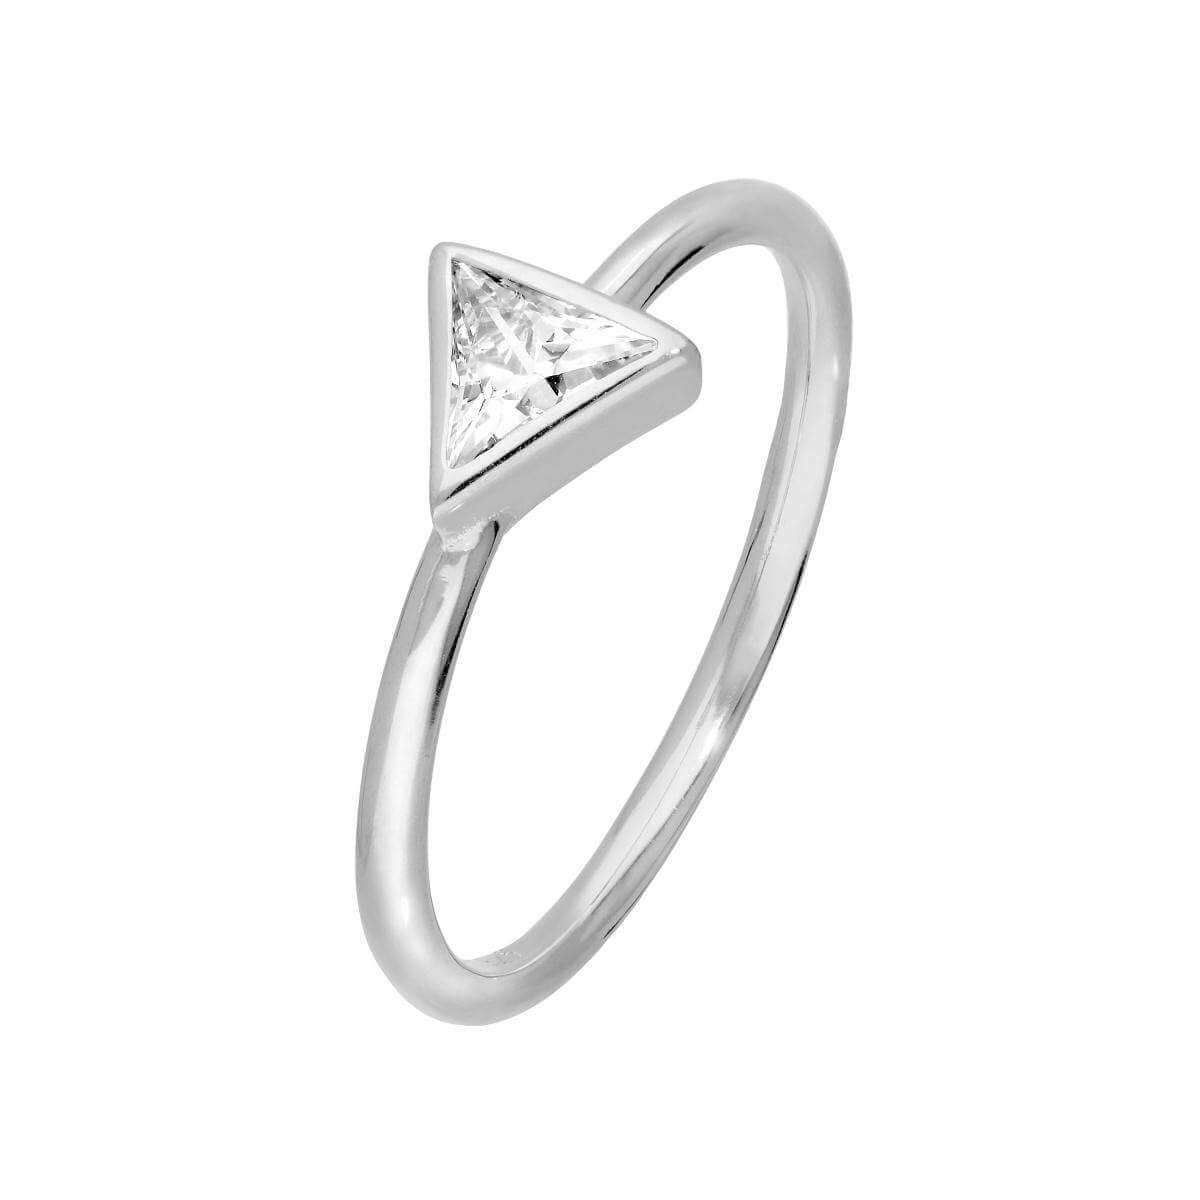 Sterling Silver & Clear CZ Crystal Triangle Ring Size J - W